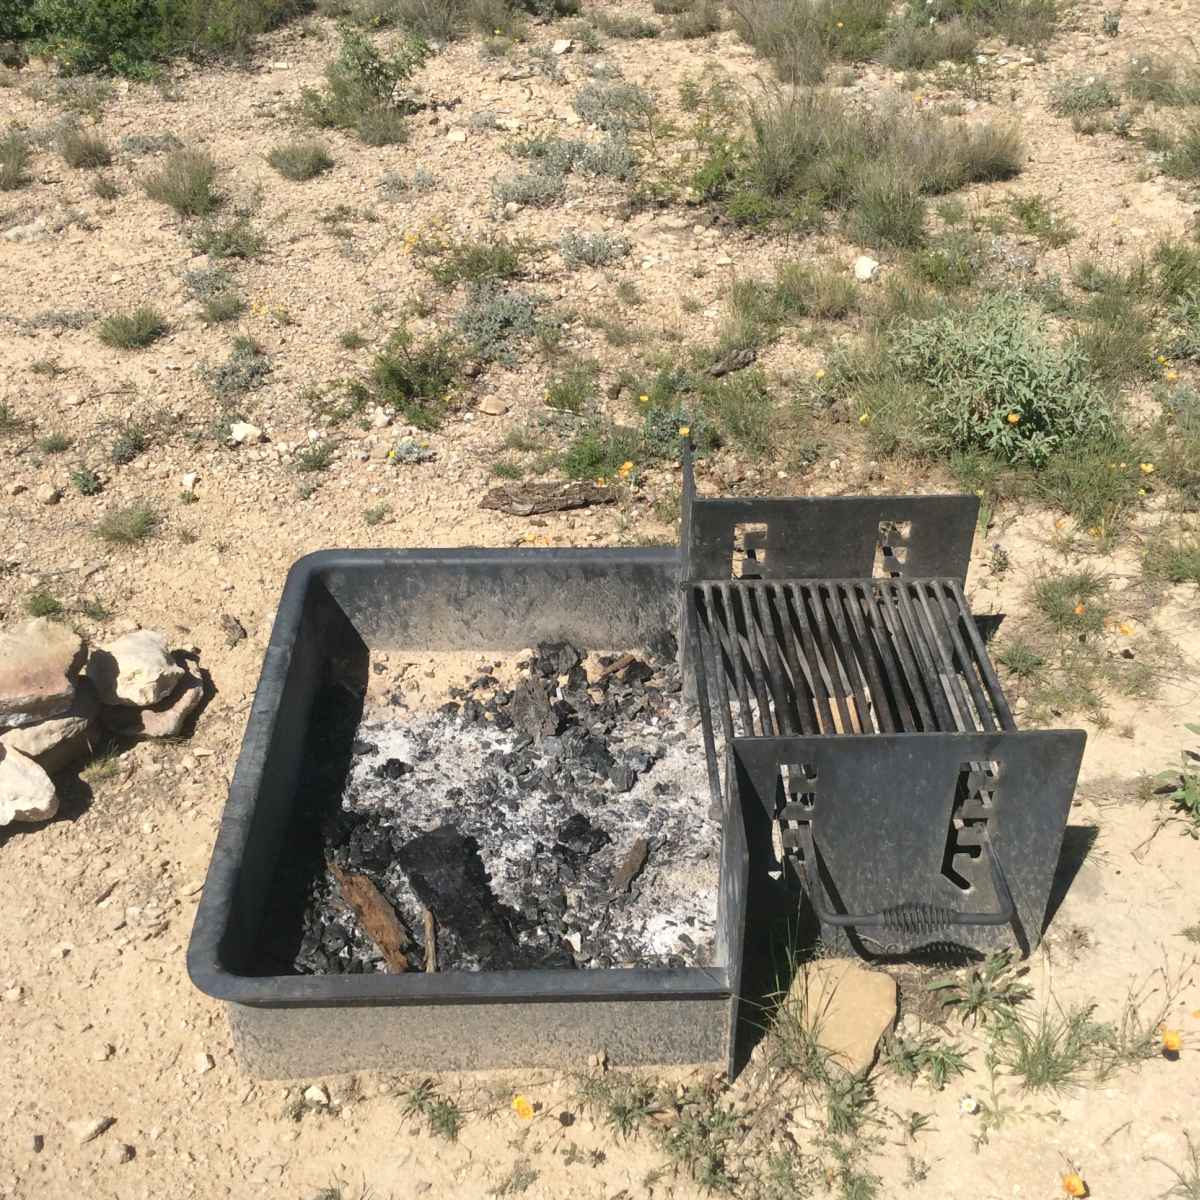 All campsites in the Roadrunner Primitive Camping Area have fire rings with adjustable grills.